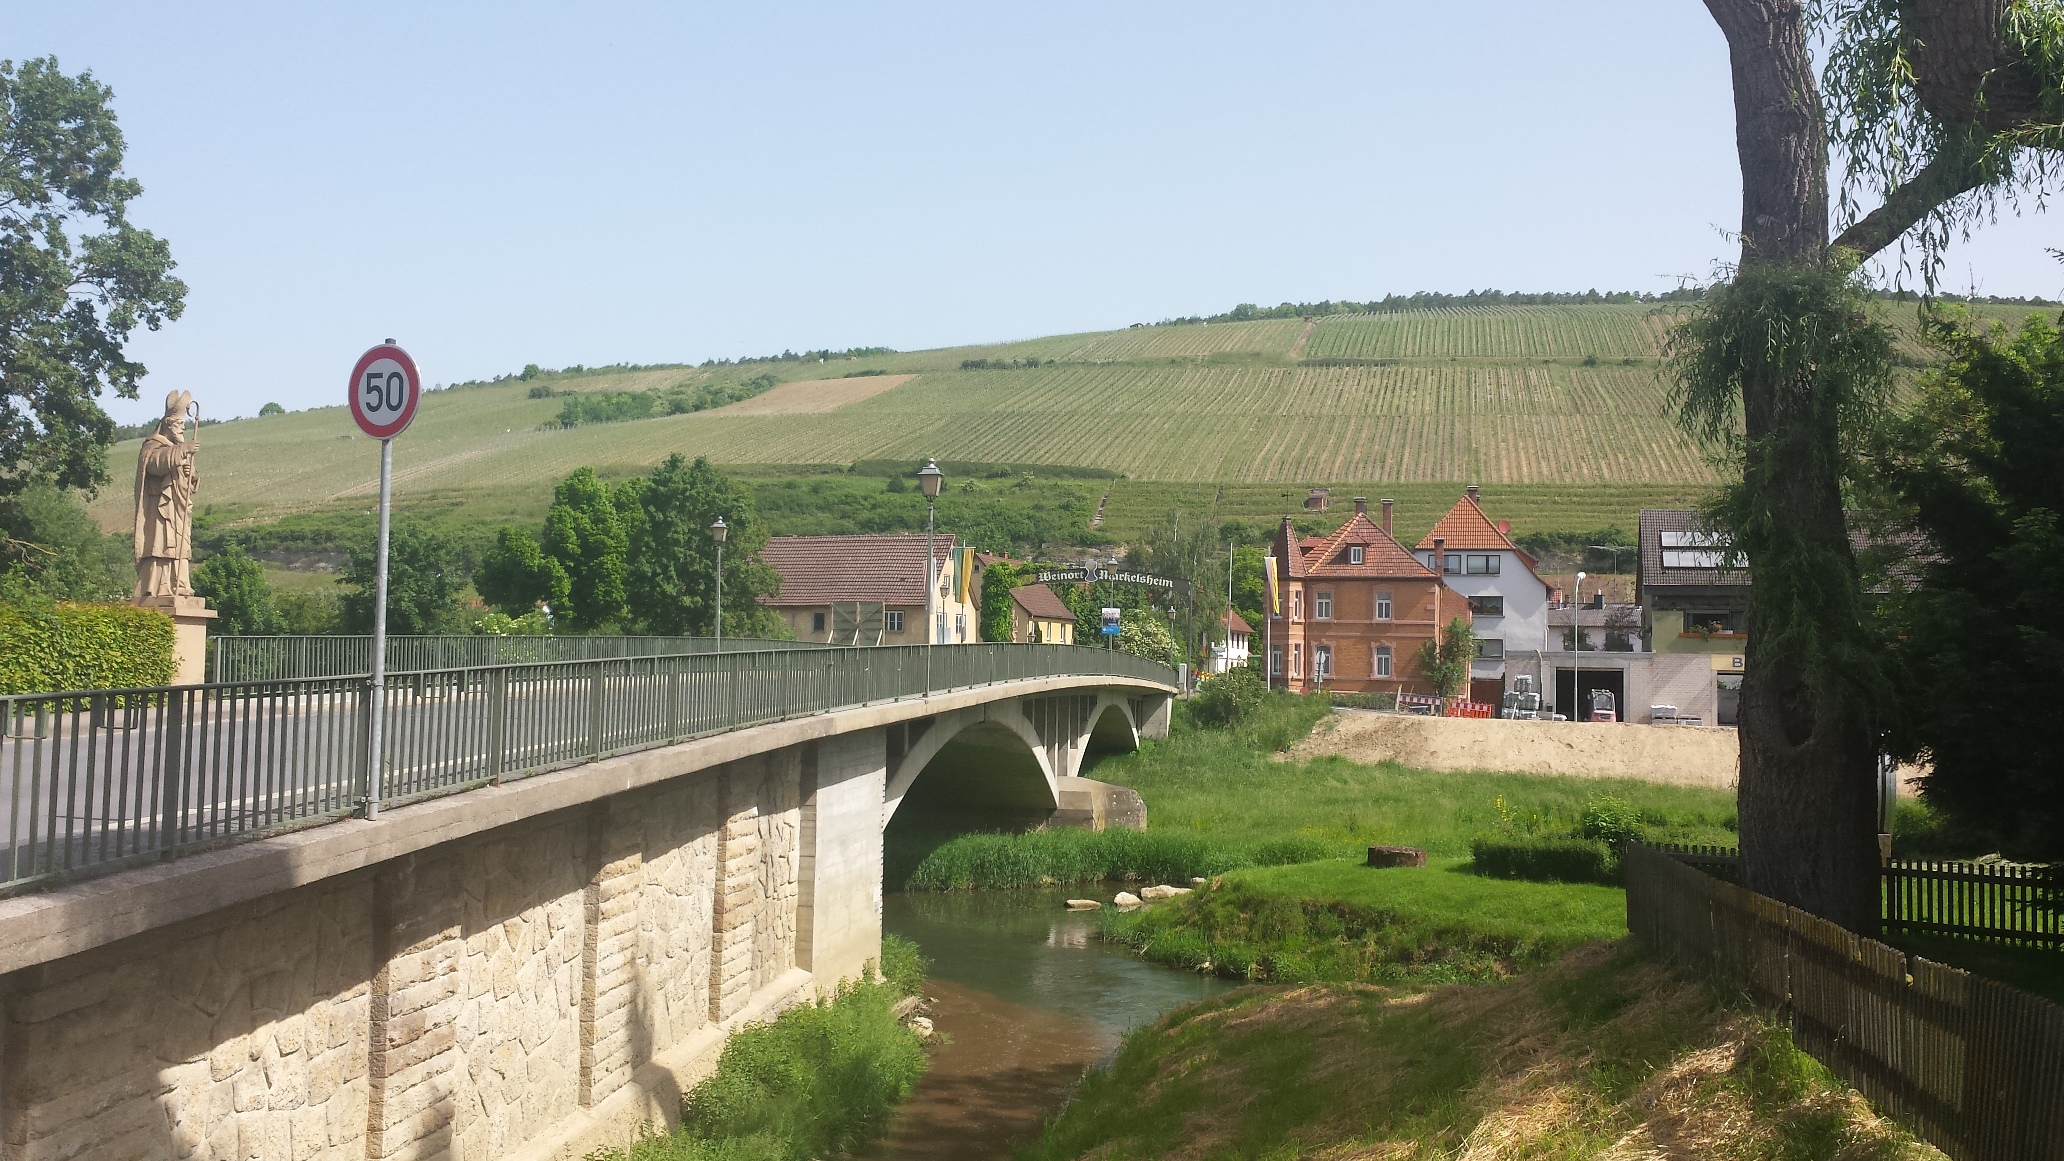 The Tauber flows directly through Markelsheim.